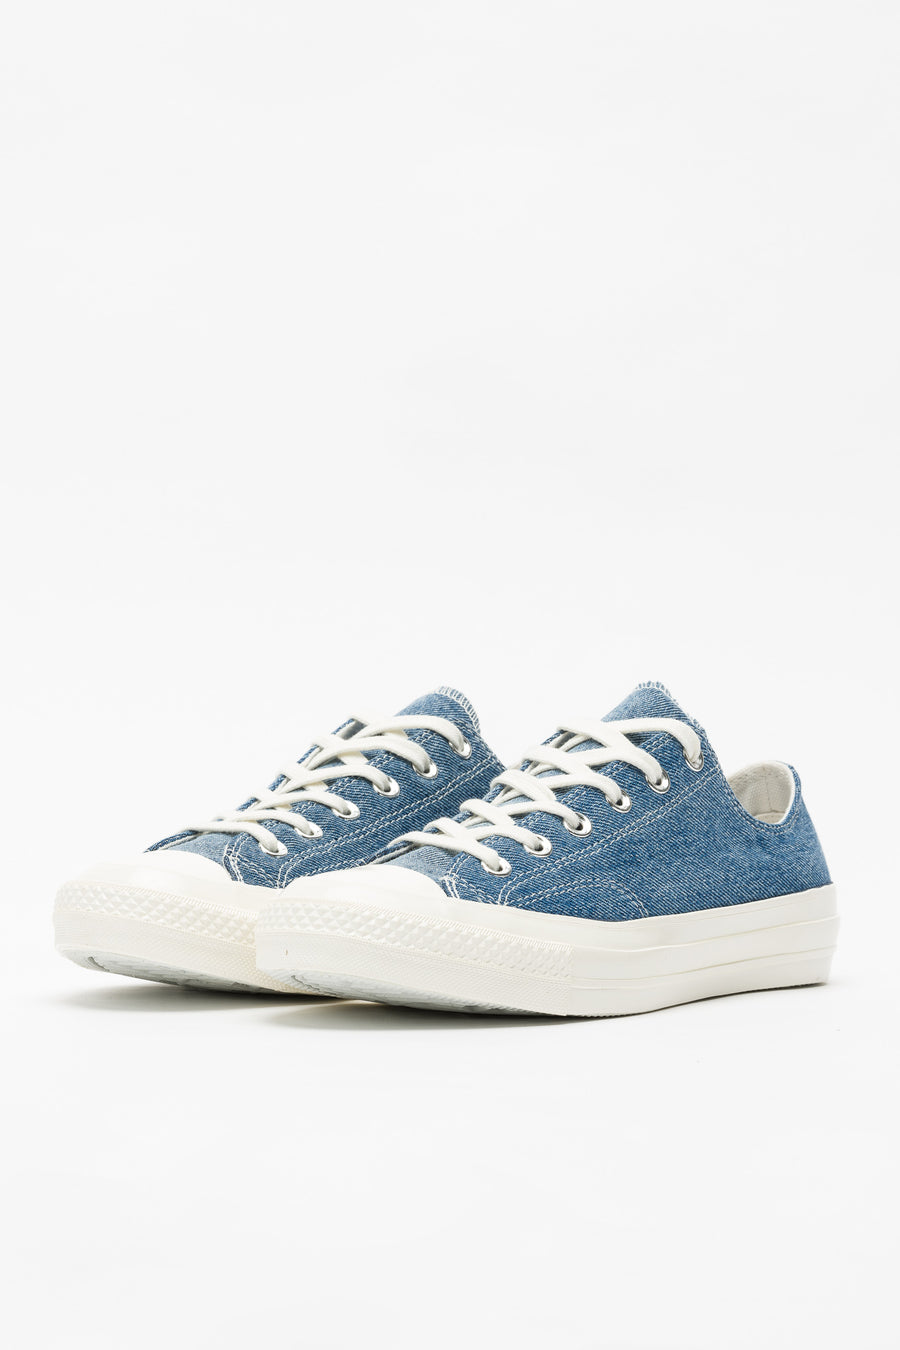 Converse Chuck 70 Ox in Medium Denim - Notre